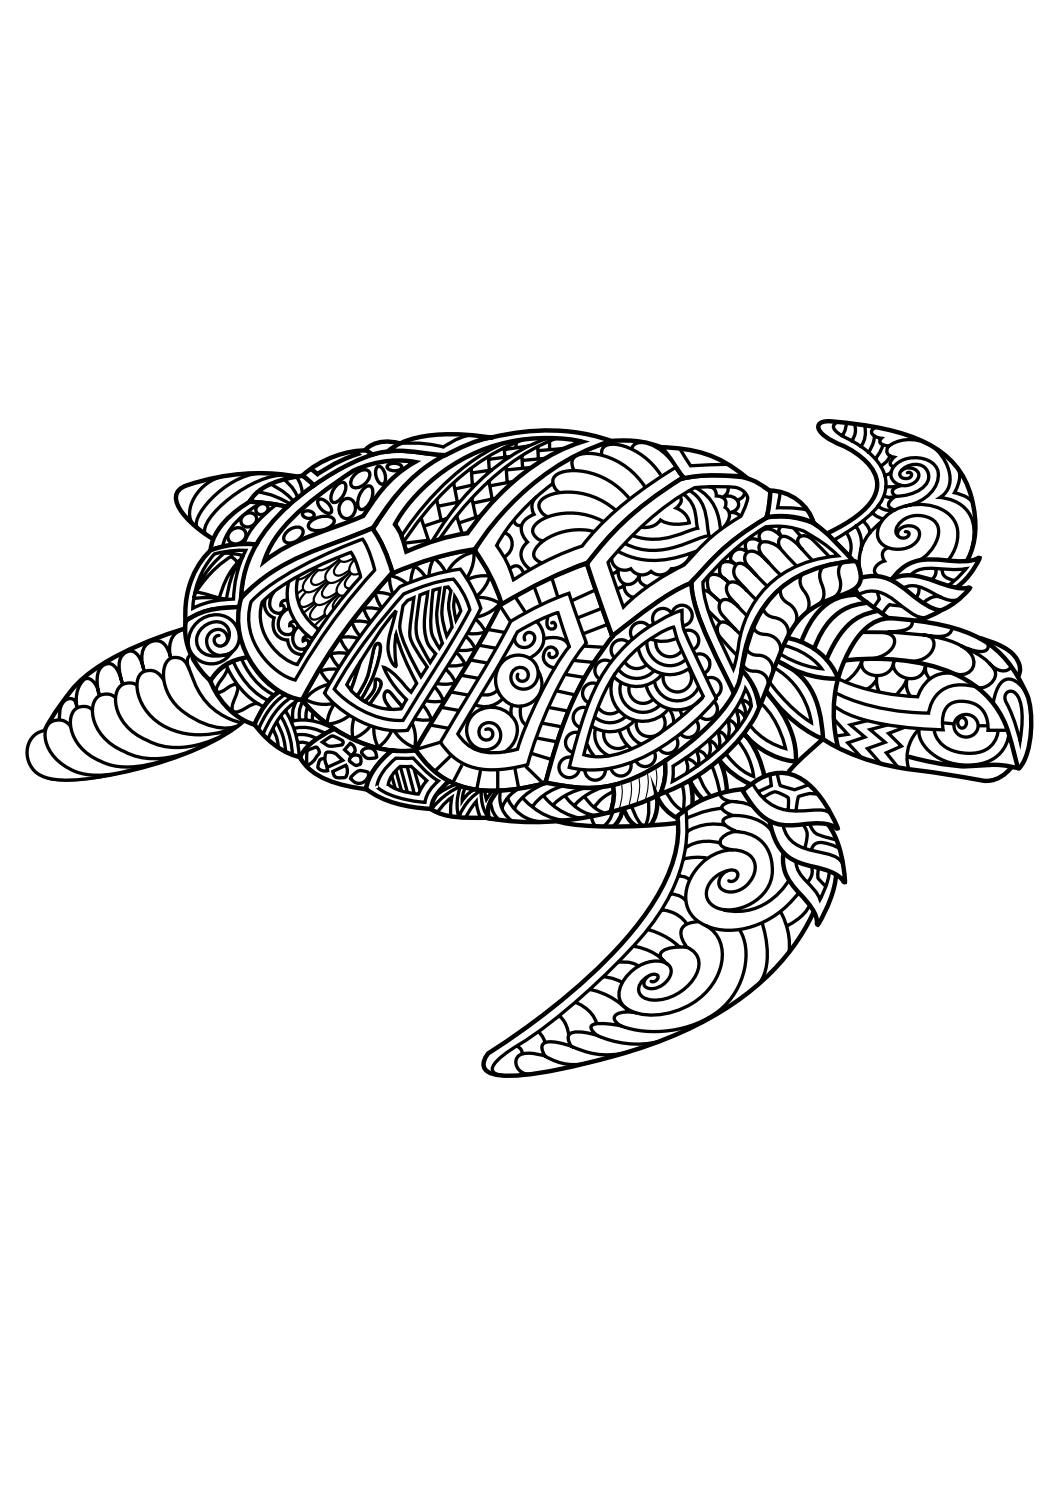 Animal Coloring Pages Pdf Turtle Coloring Pages Mandala